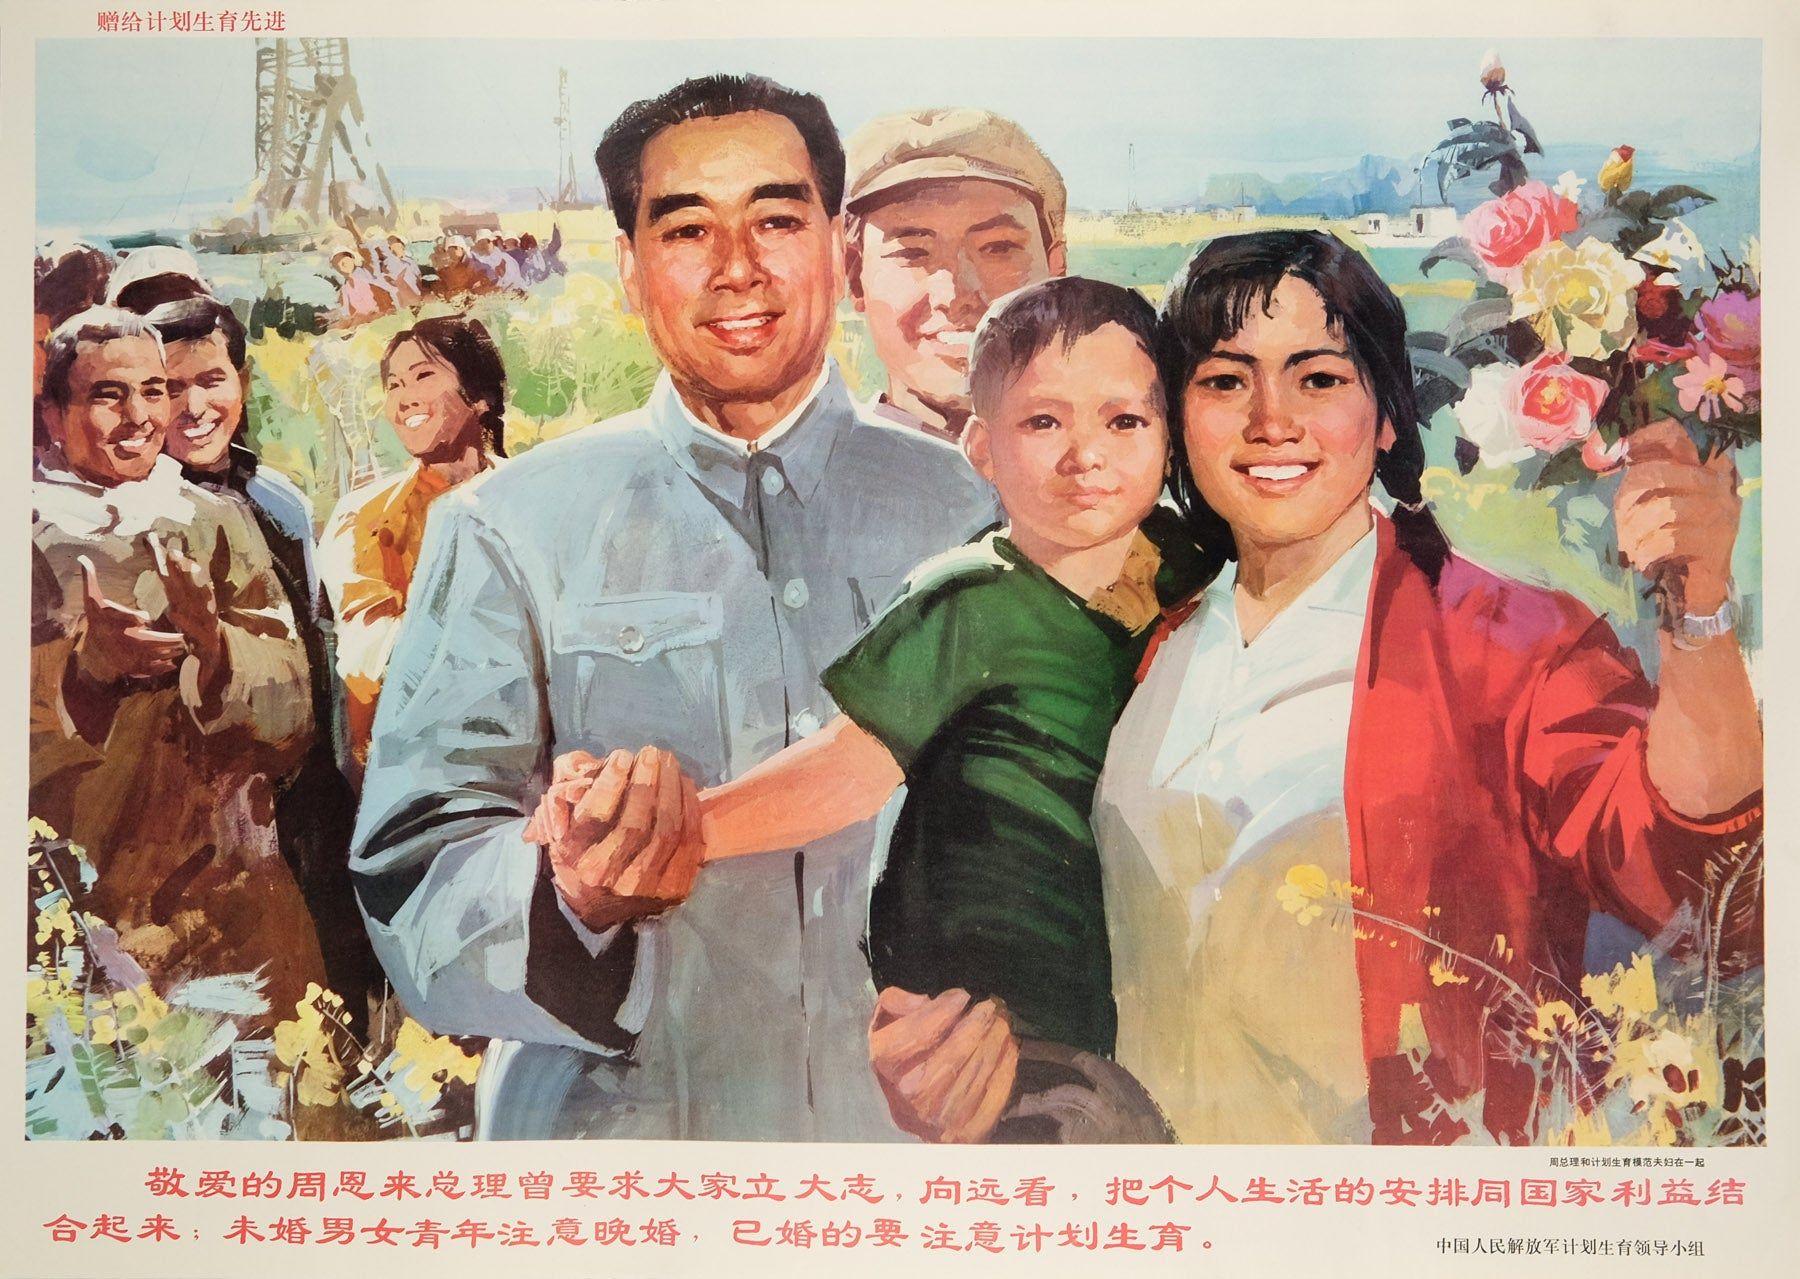 image of the original vintage Chinese communist propaganda poster titled Premier Zhou together with model family planning couple